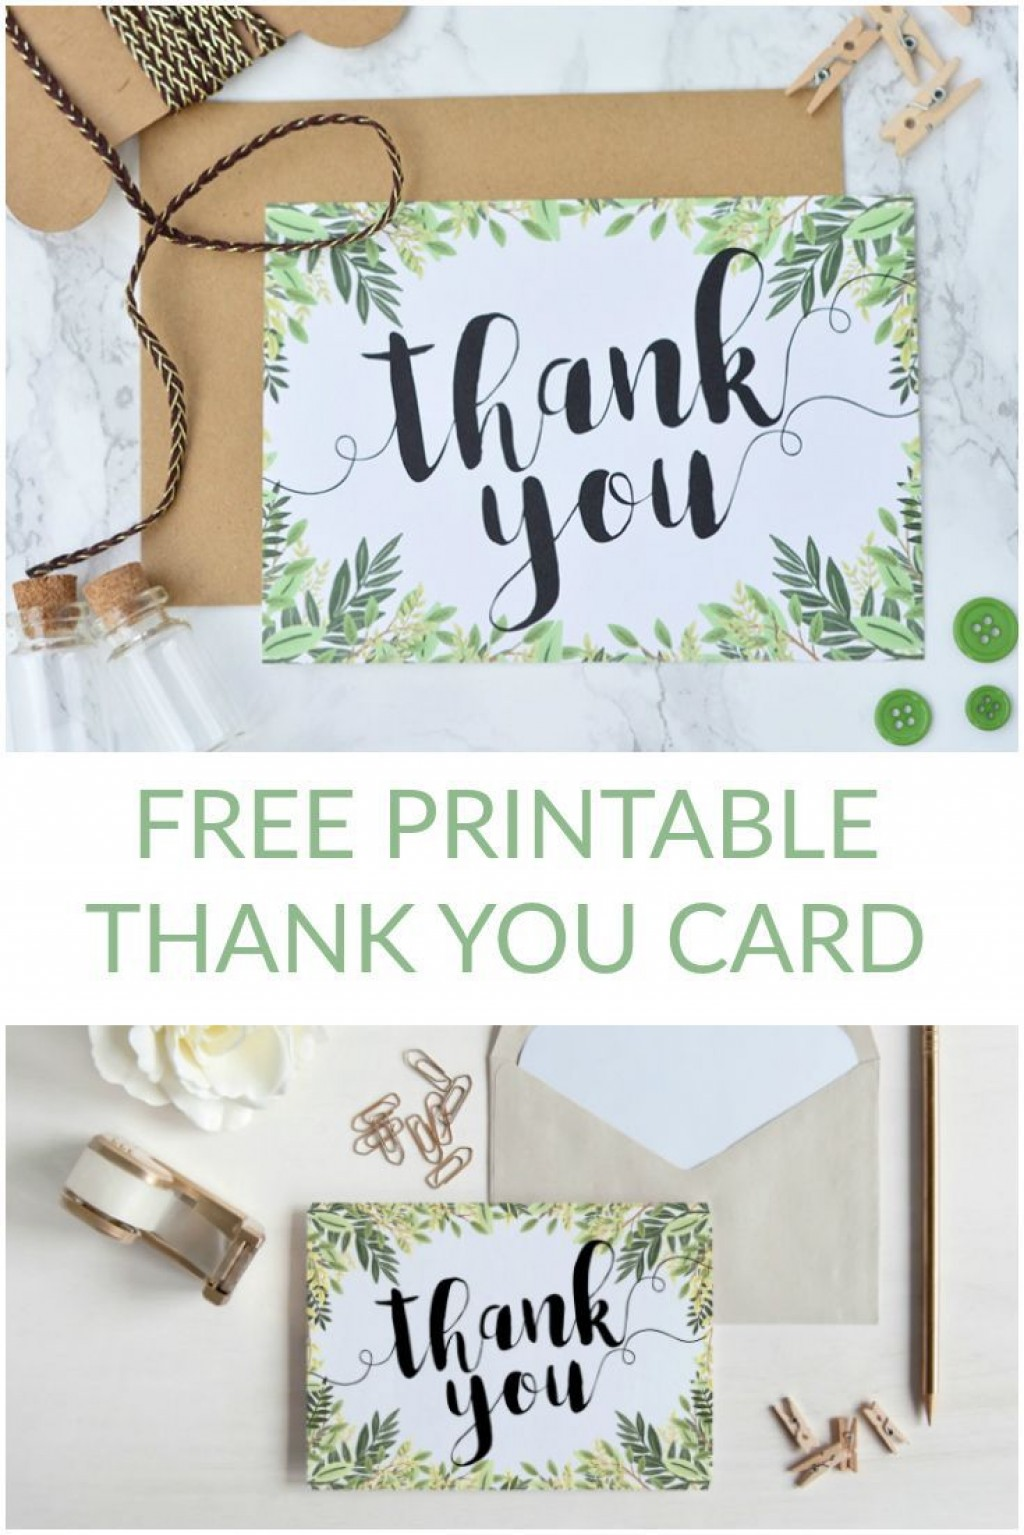 004 Unbelievable Free Thank You Card Template Highest Clarity  Google Doc For Funeral Microsoft WordLarge